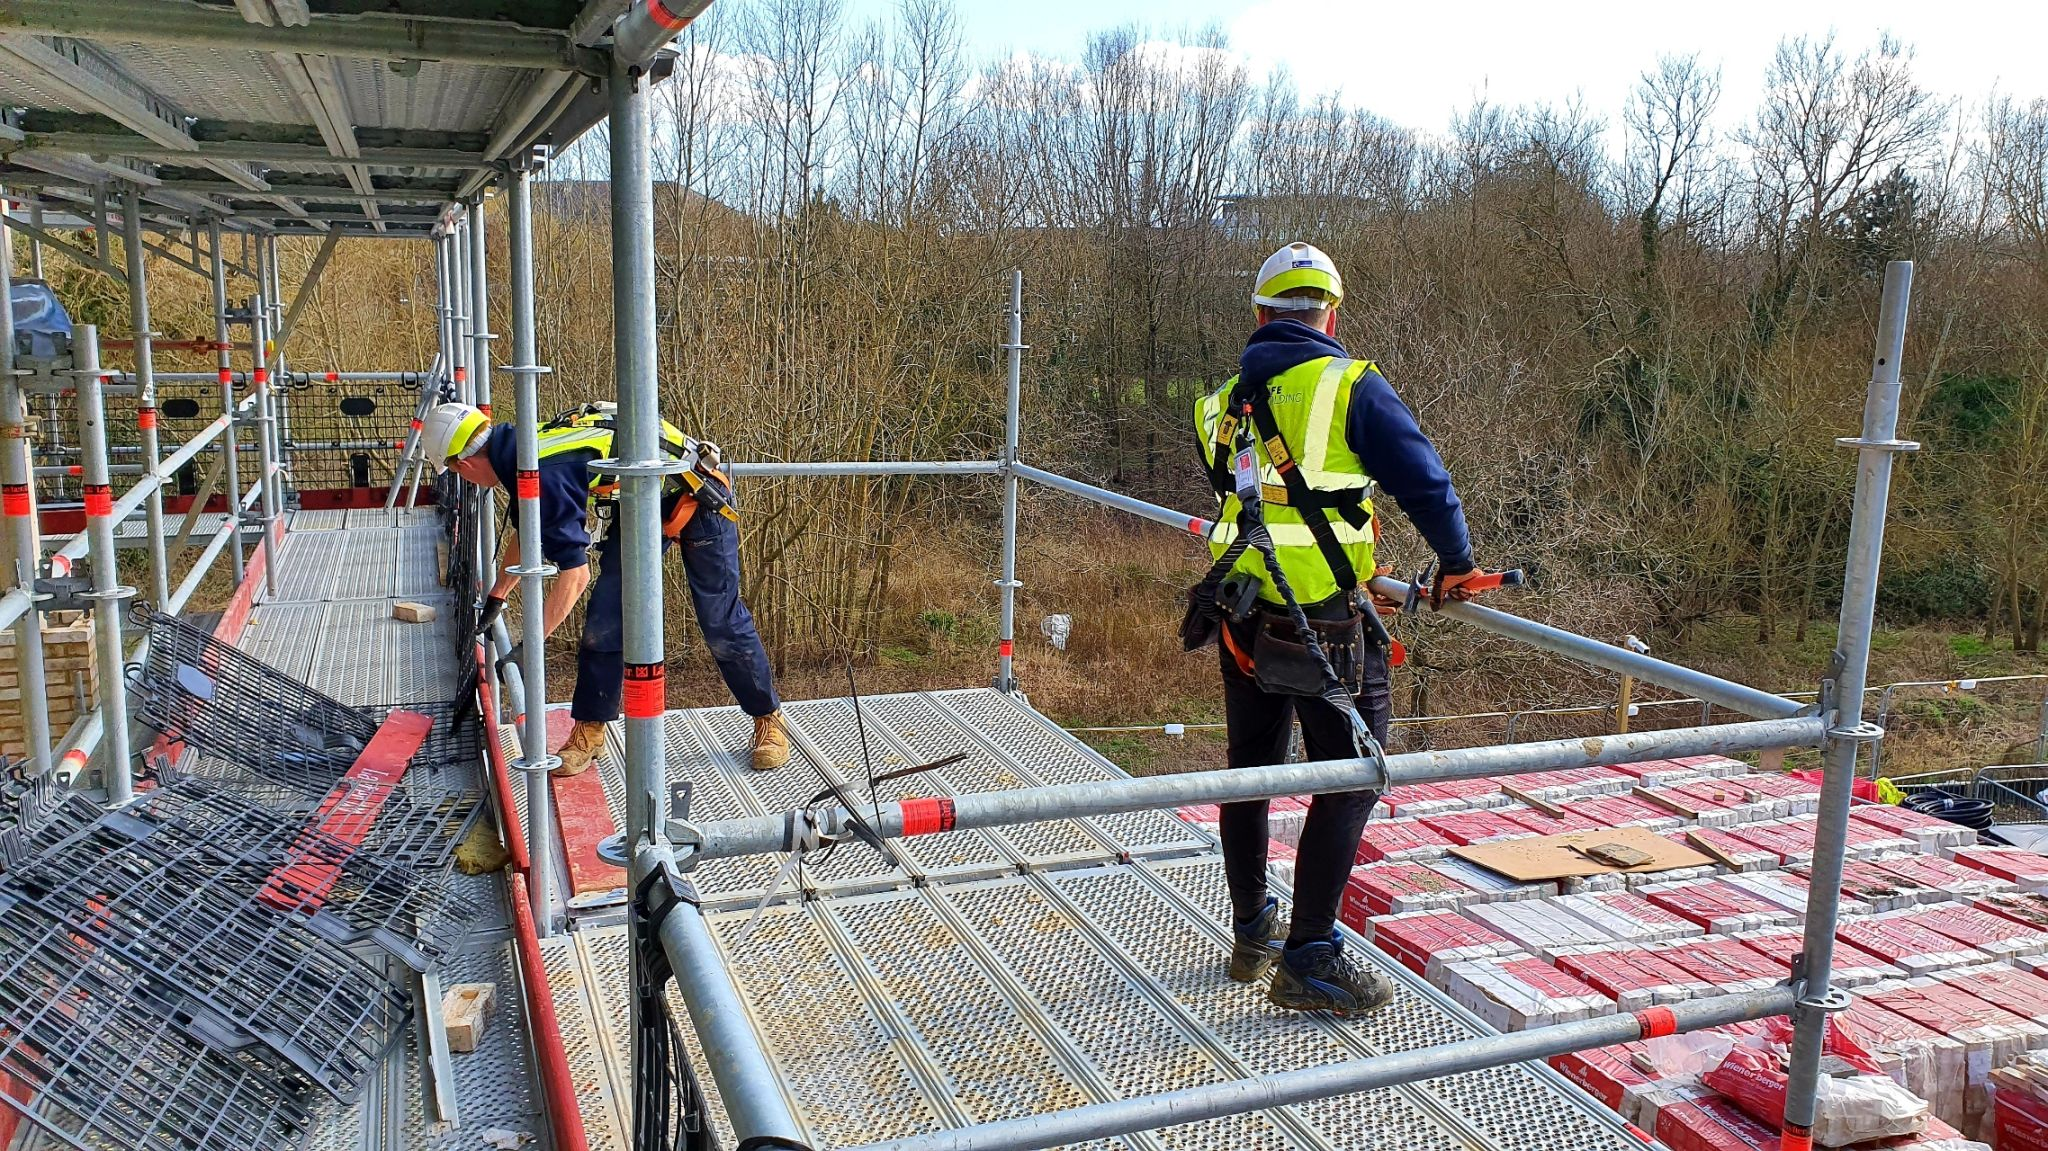 Scaffolders choice of safety harness